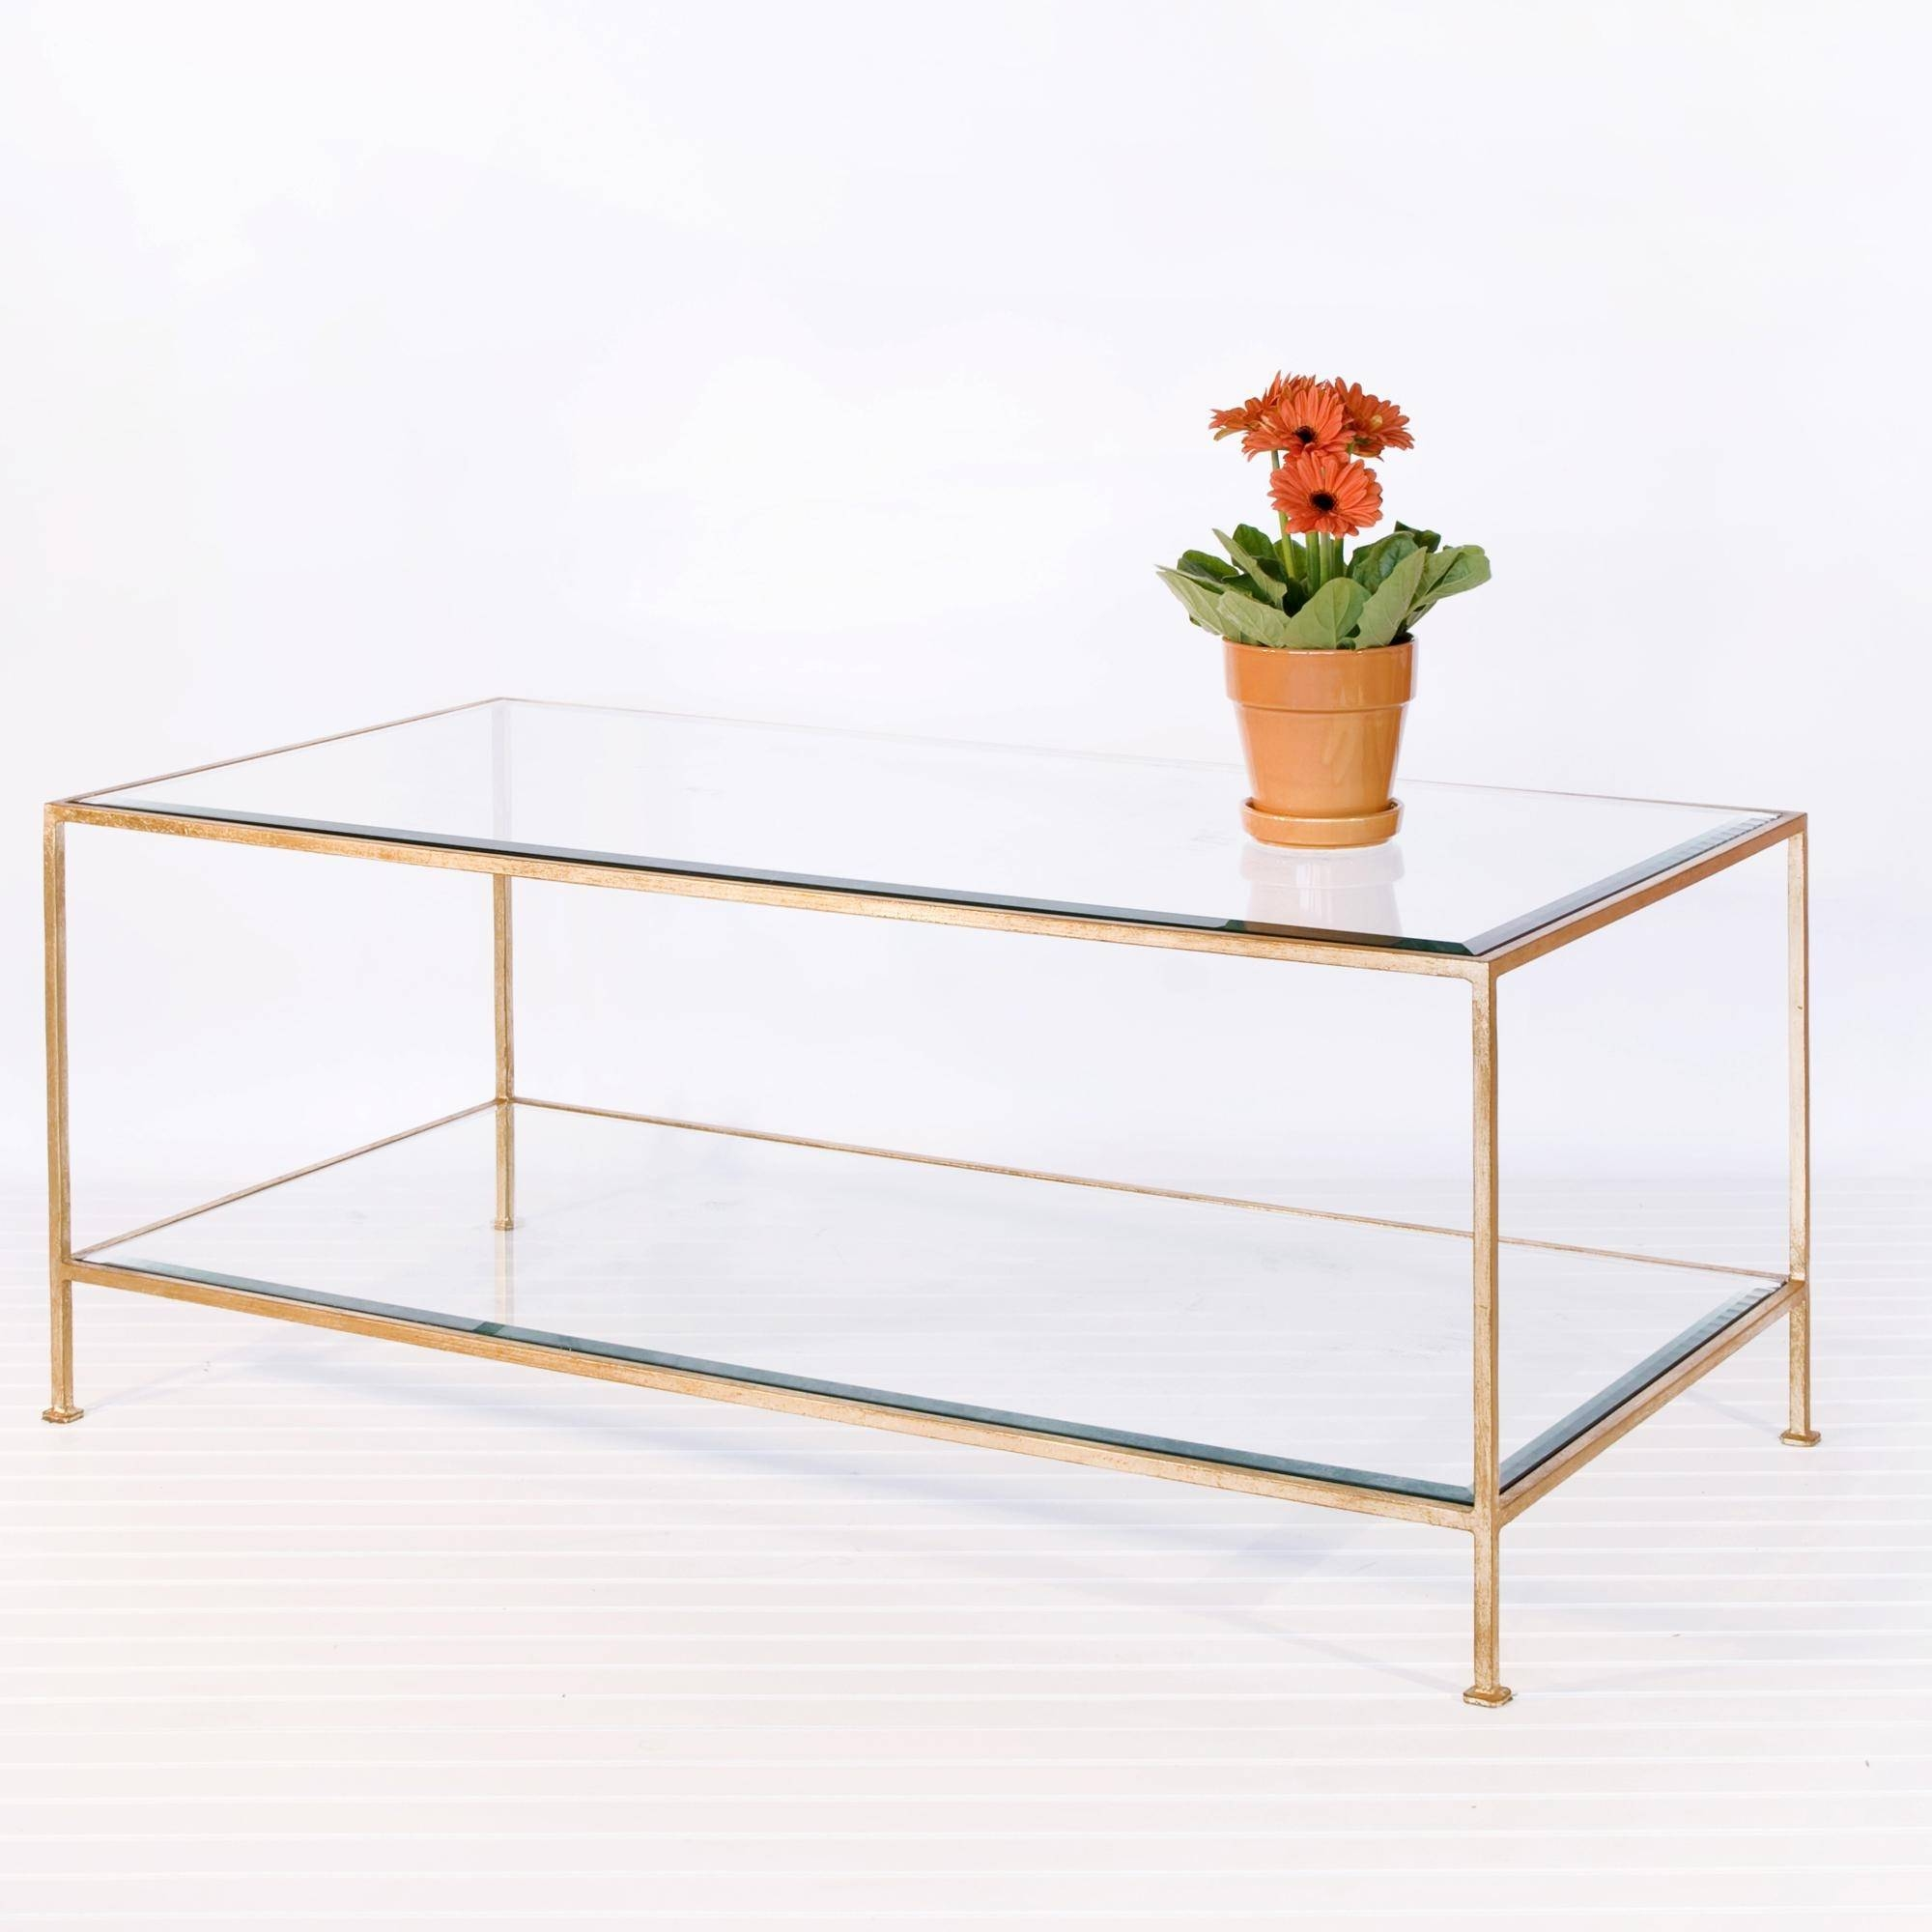 Captivating Glass Gold Coffee Table Coast – Antique Gold Glass Inside Glass Gold Coffee Tables (Photo 9 of 30)